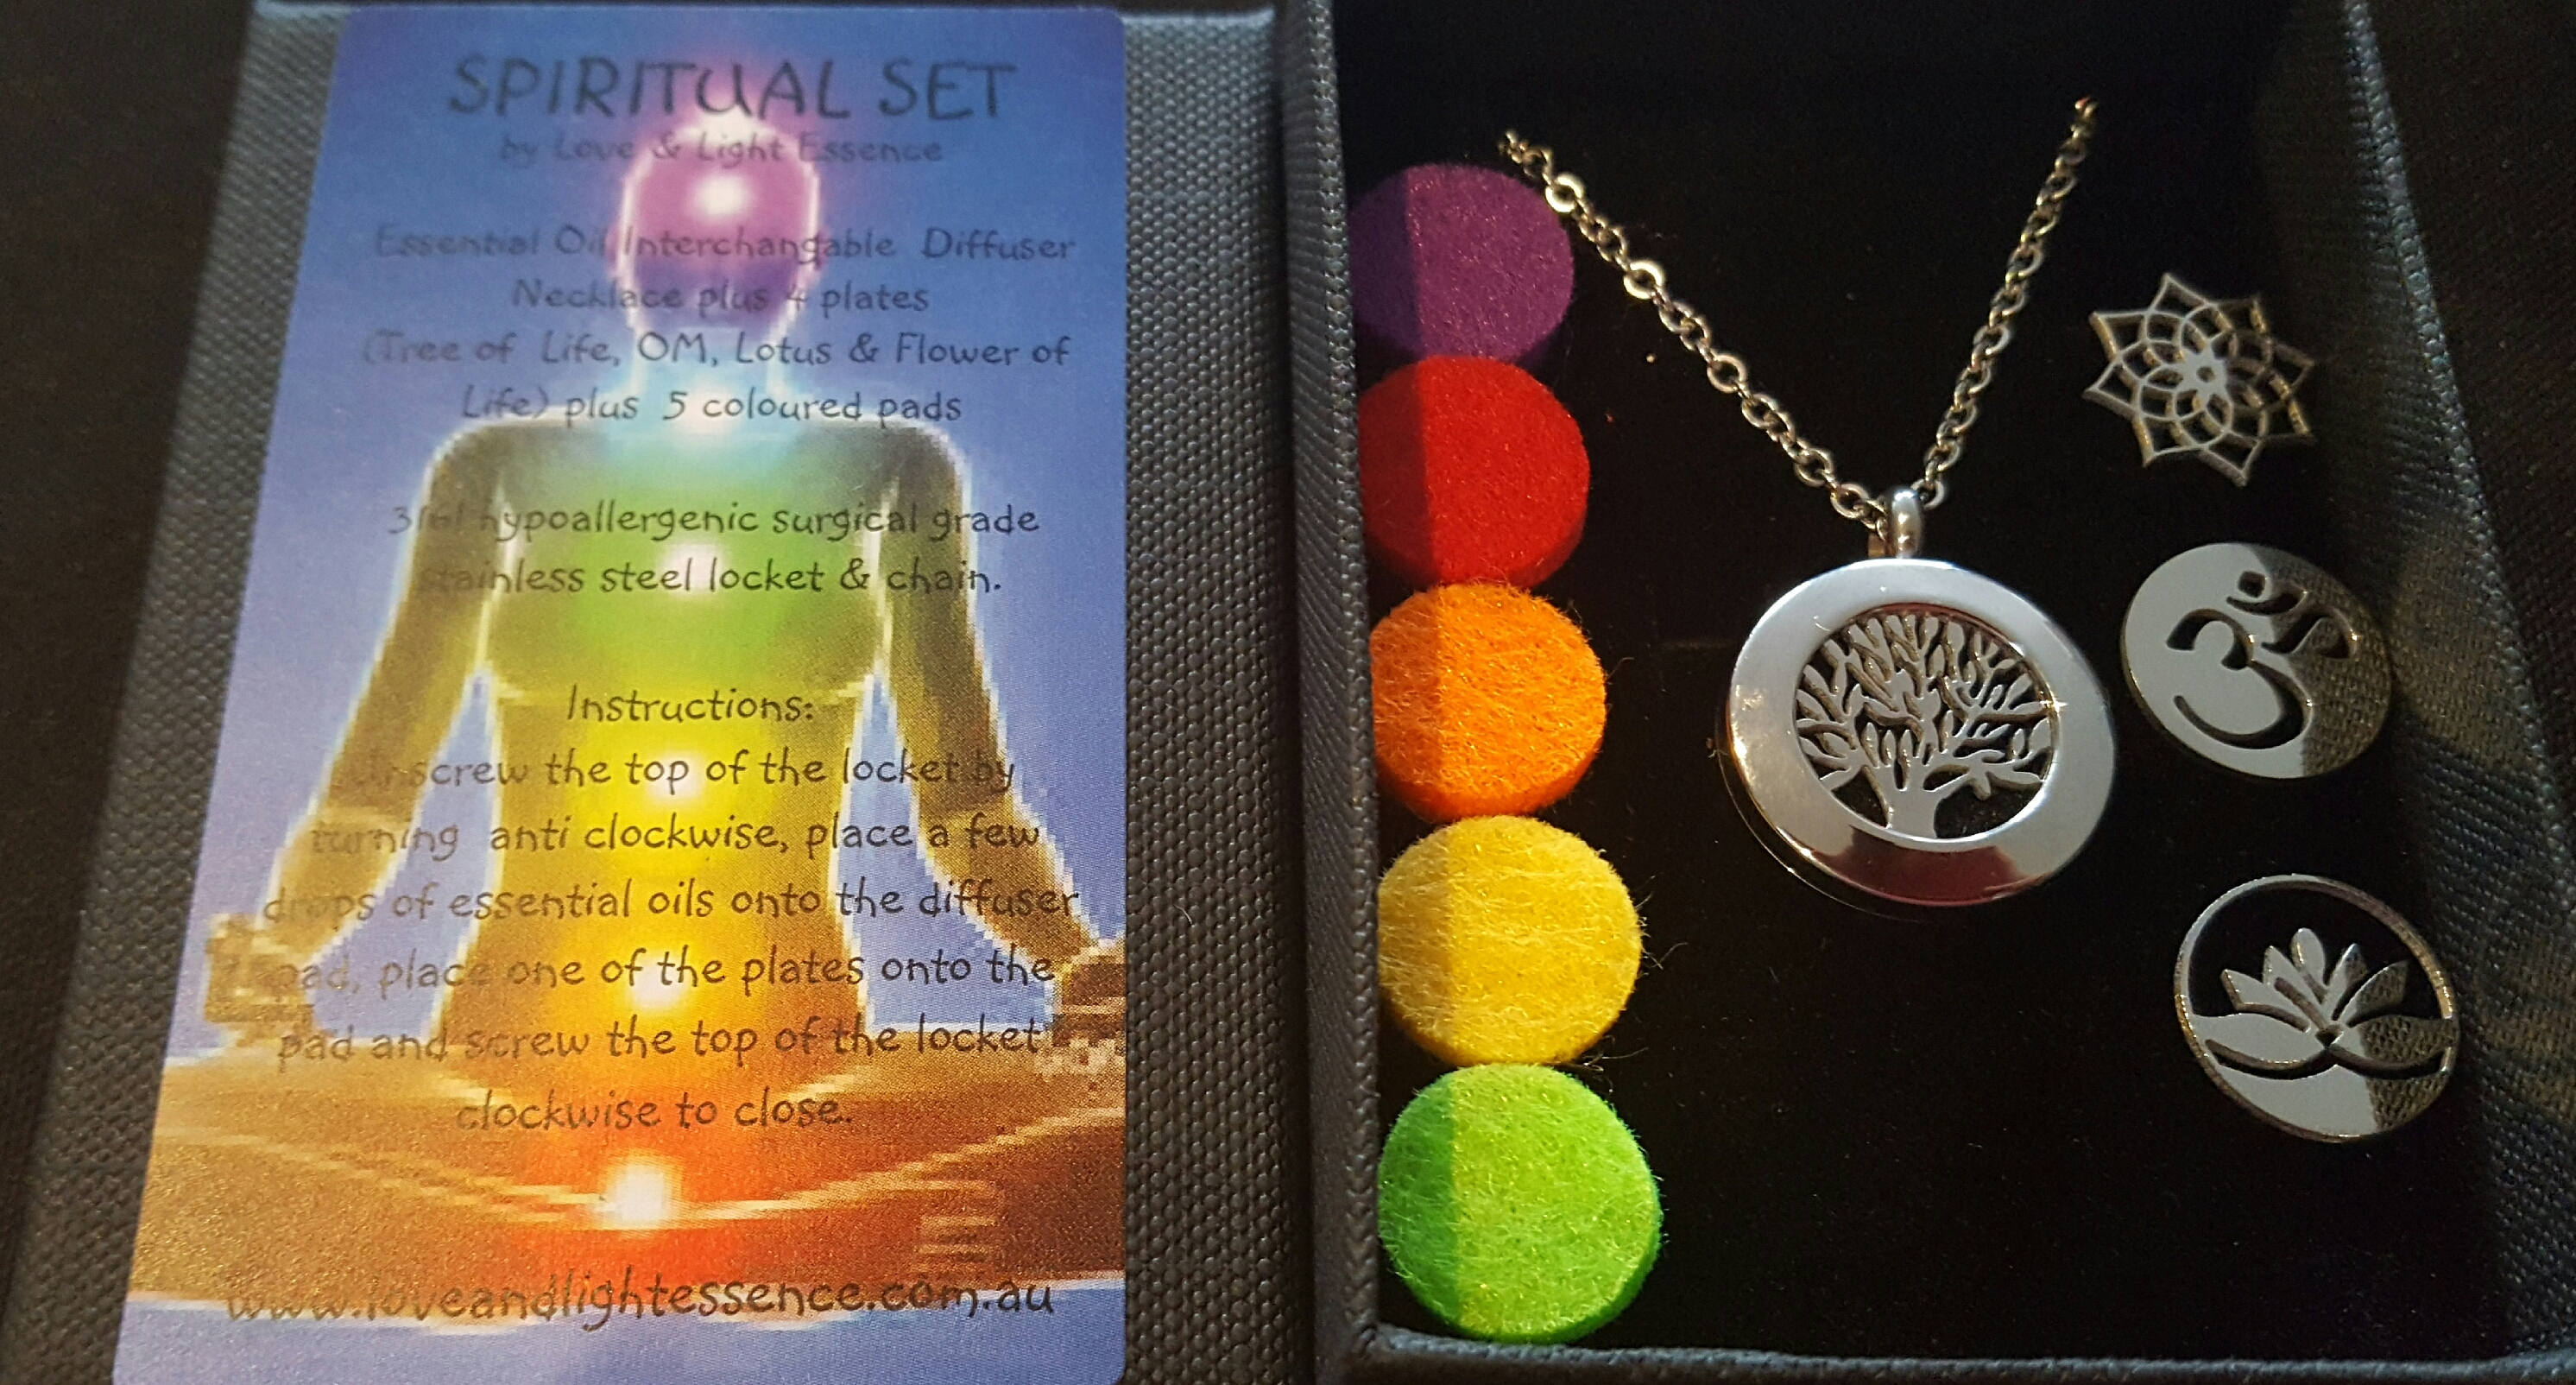 loading image itm stone is necklace chakra pendant spiritual sun energy reiki